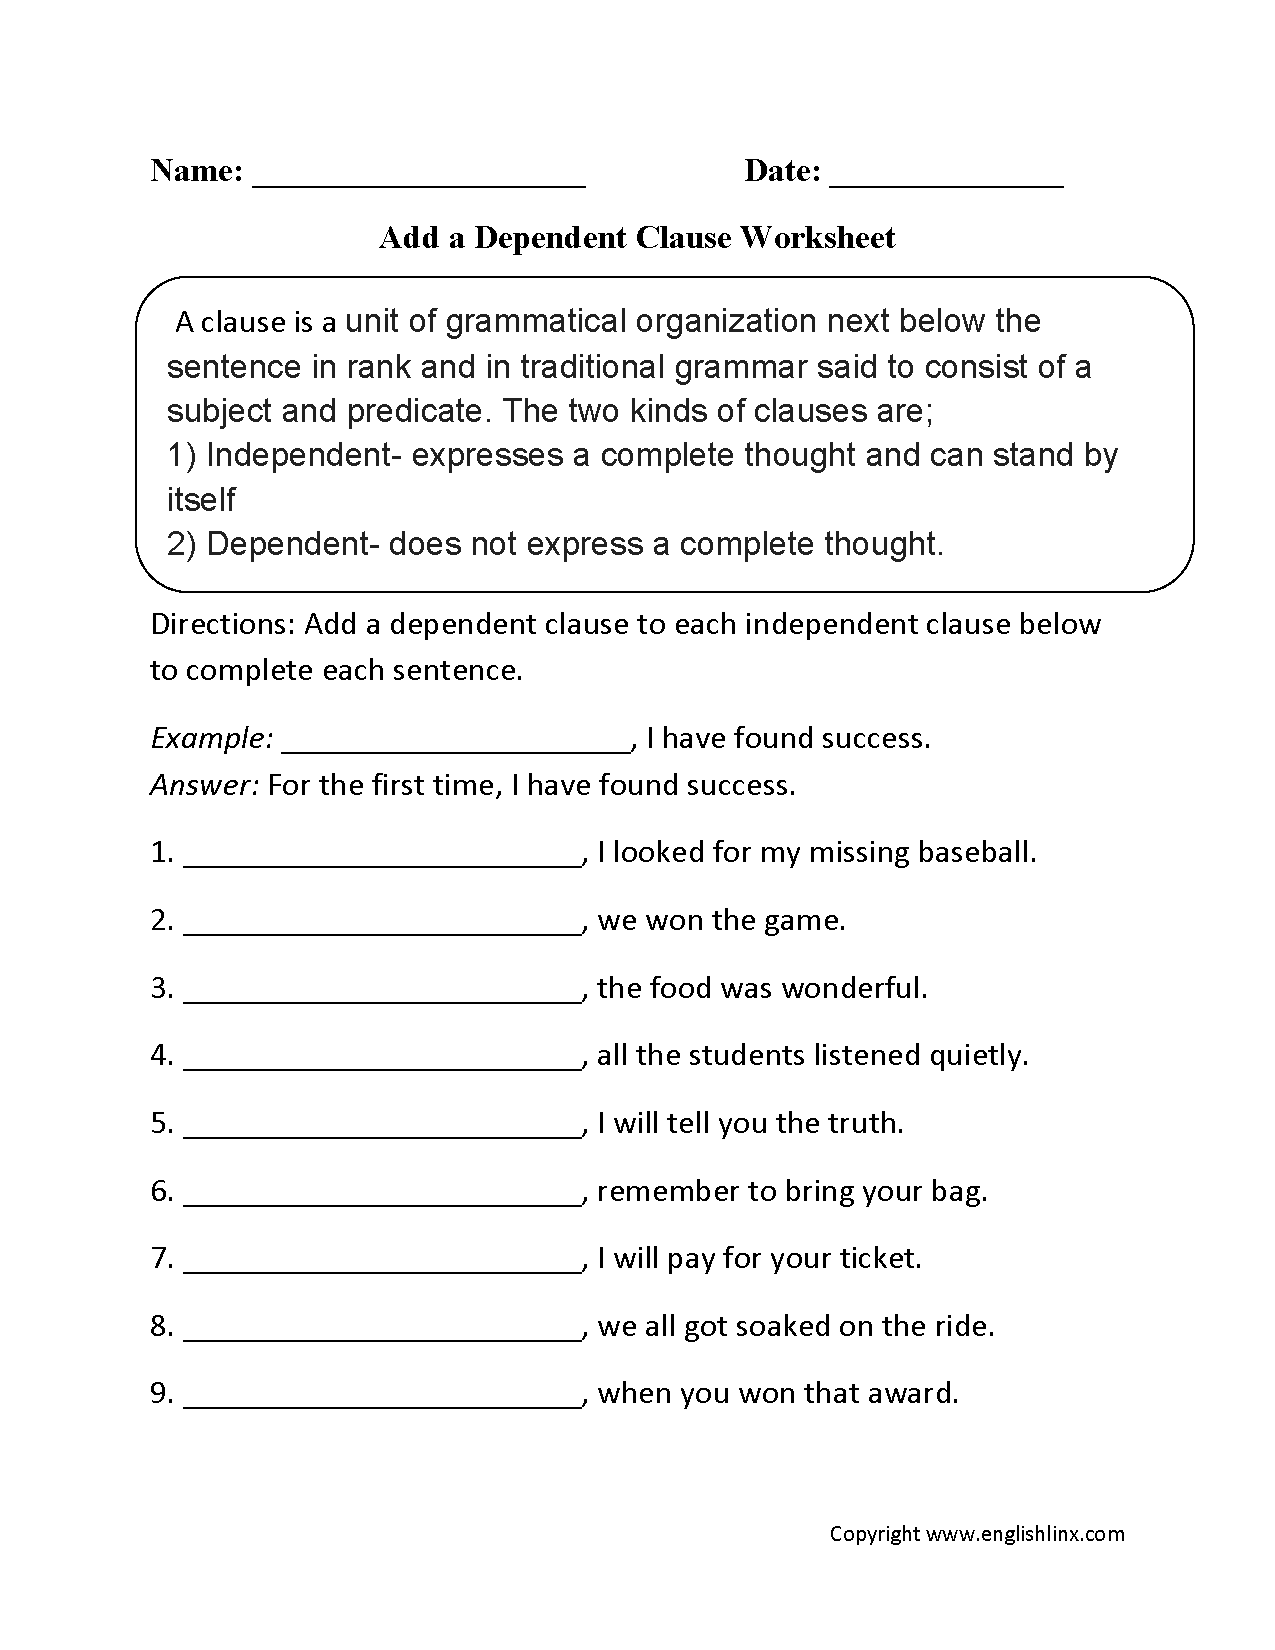 Add Dependent Clause Worksheets